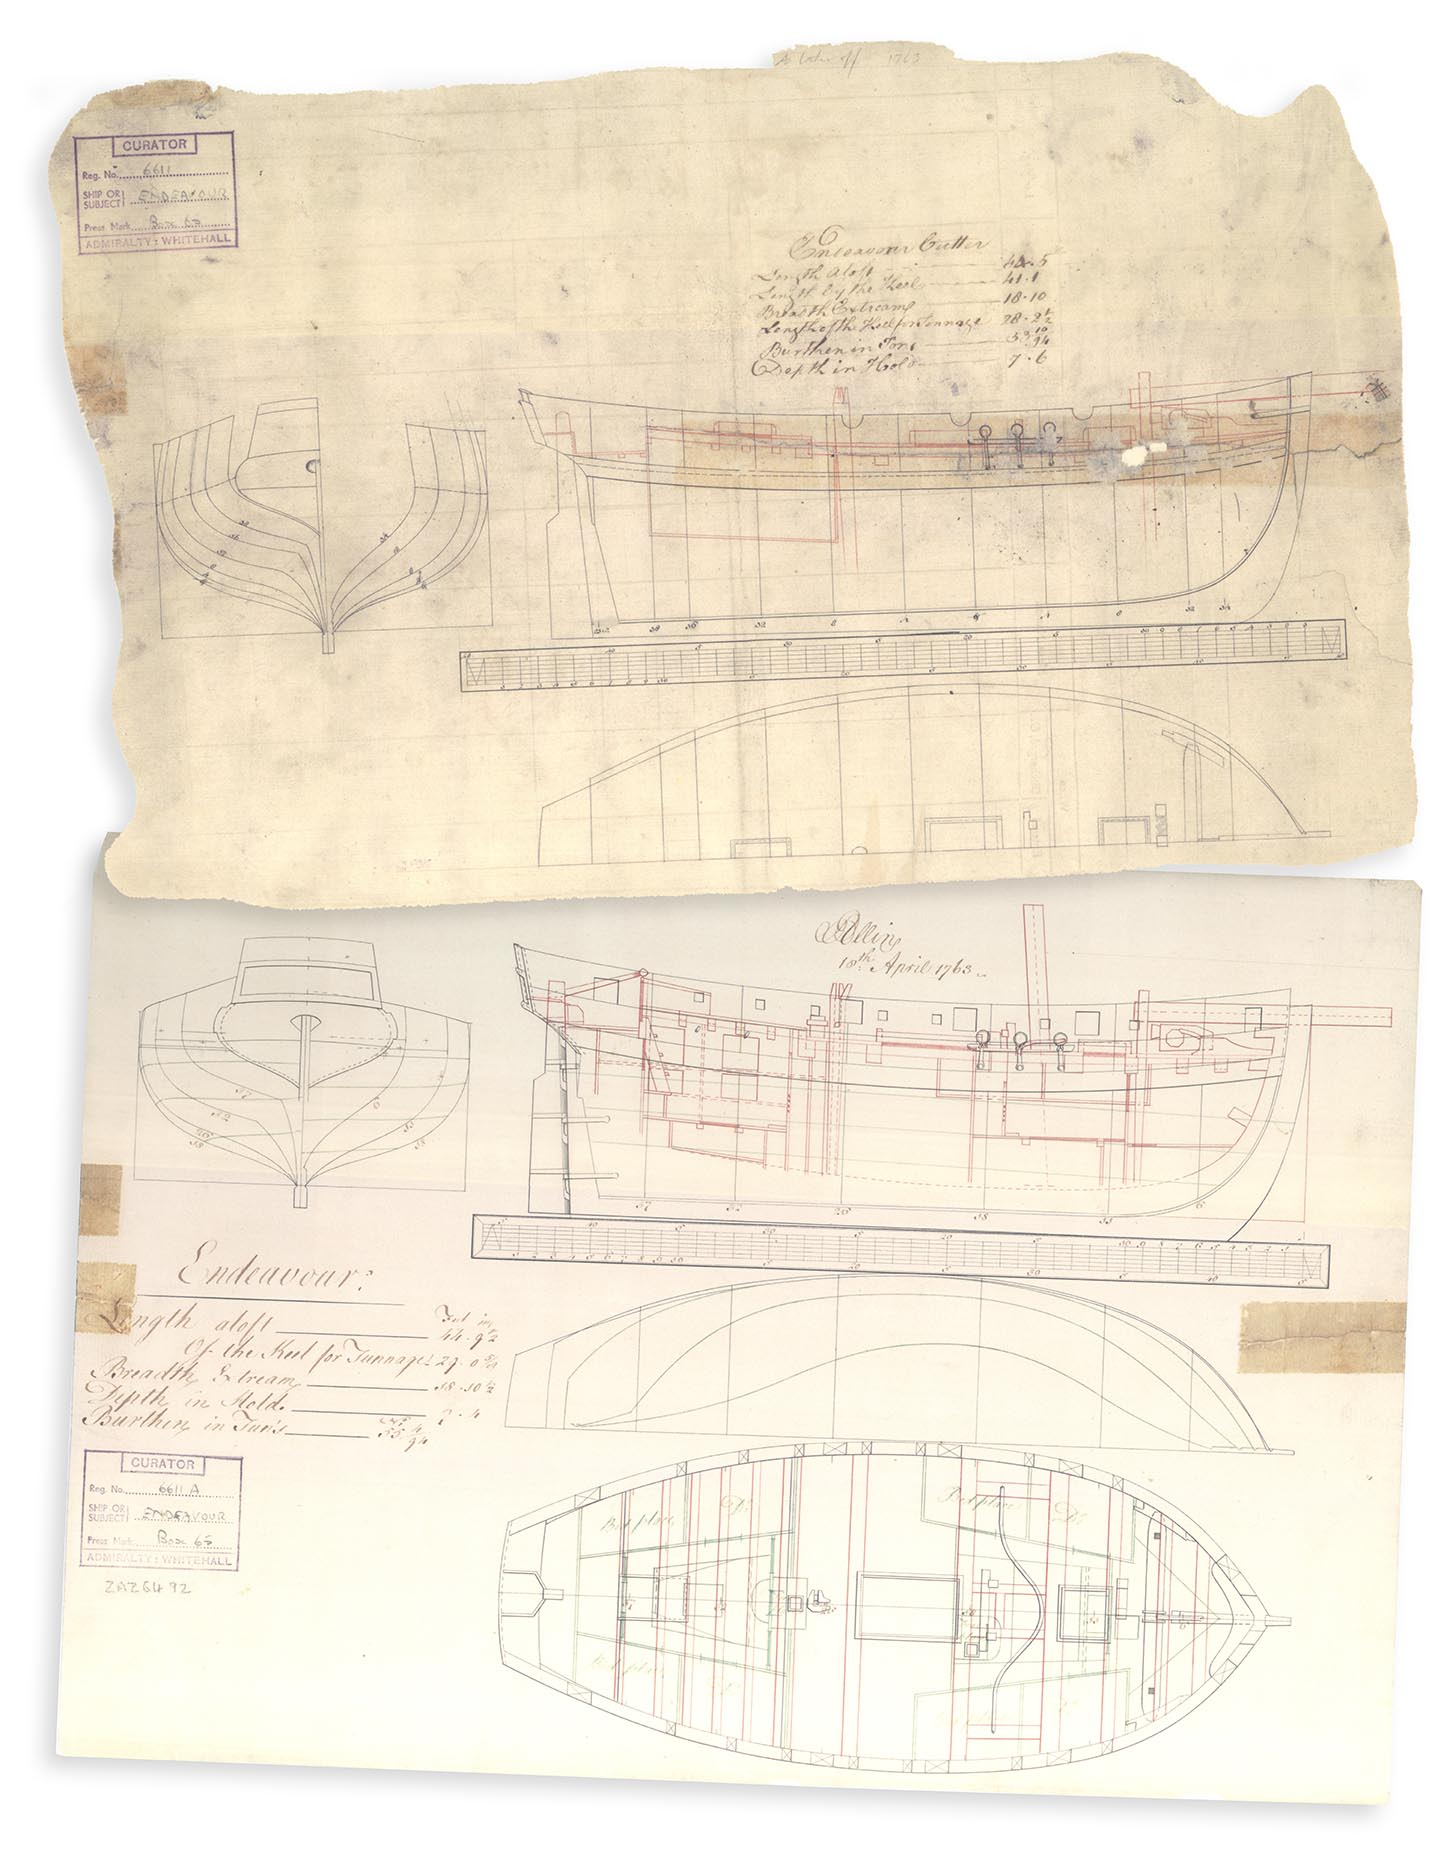 Our cutter ship will be based in these original blueprints.